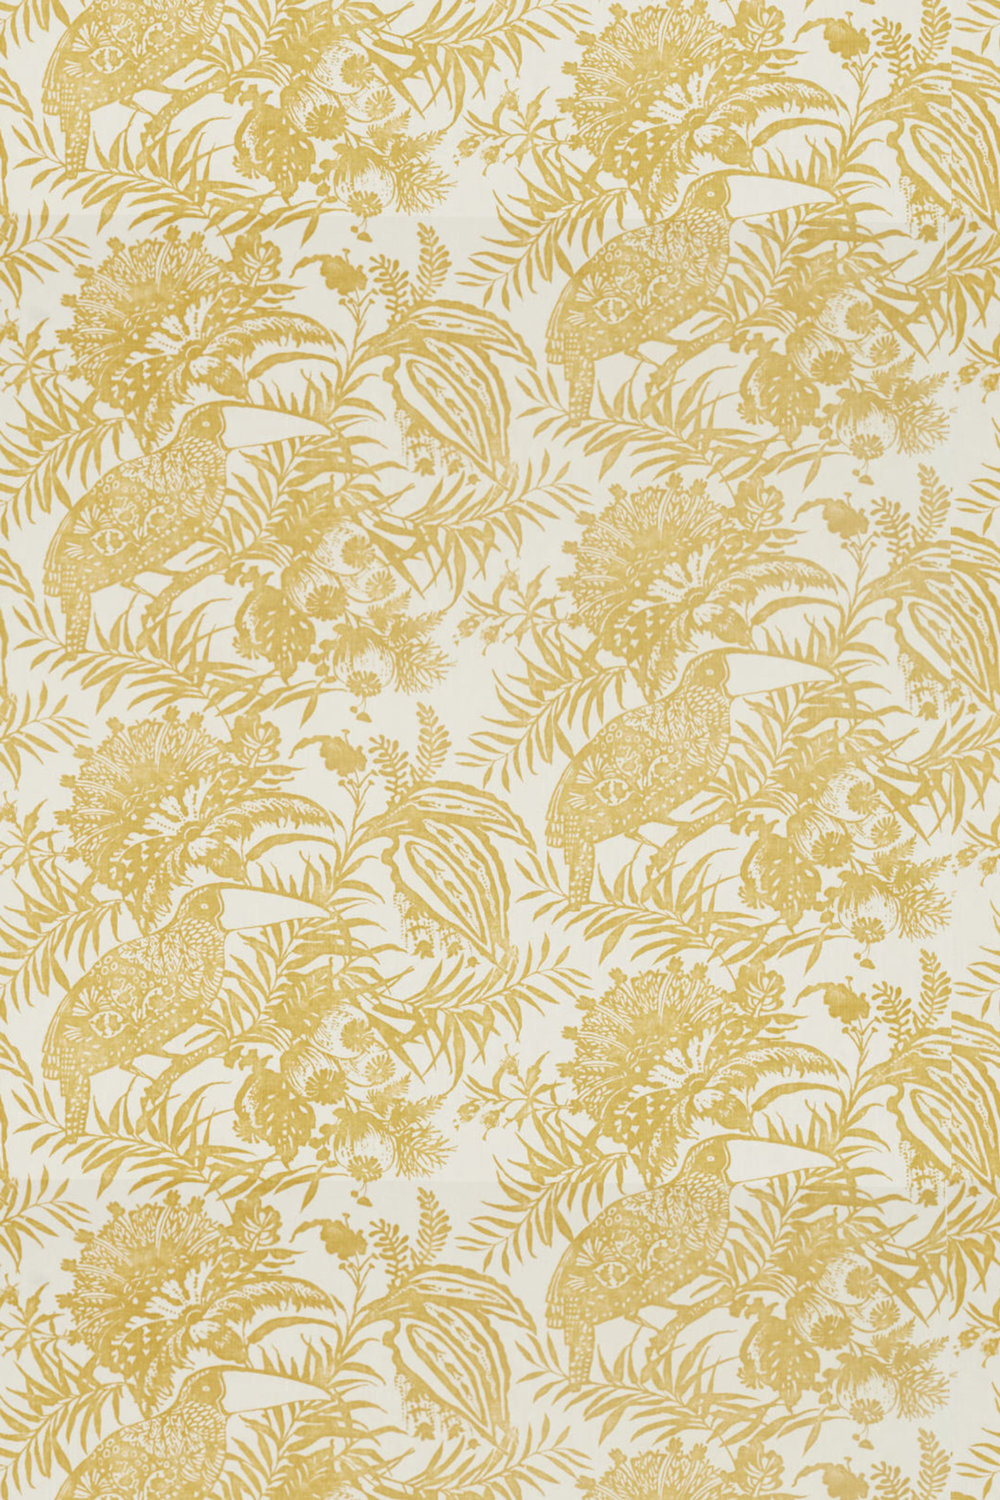 Toco Fabric - Ochre - by Harlequin